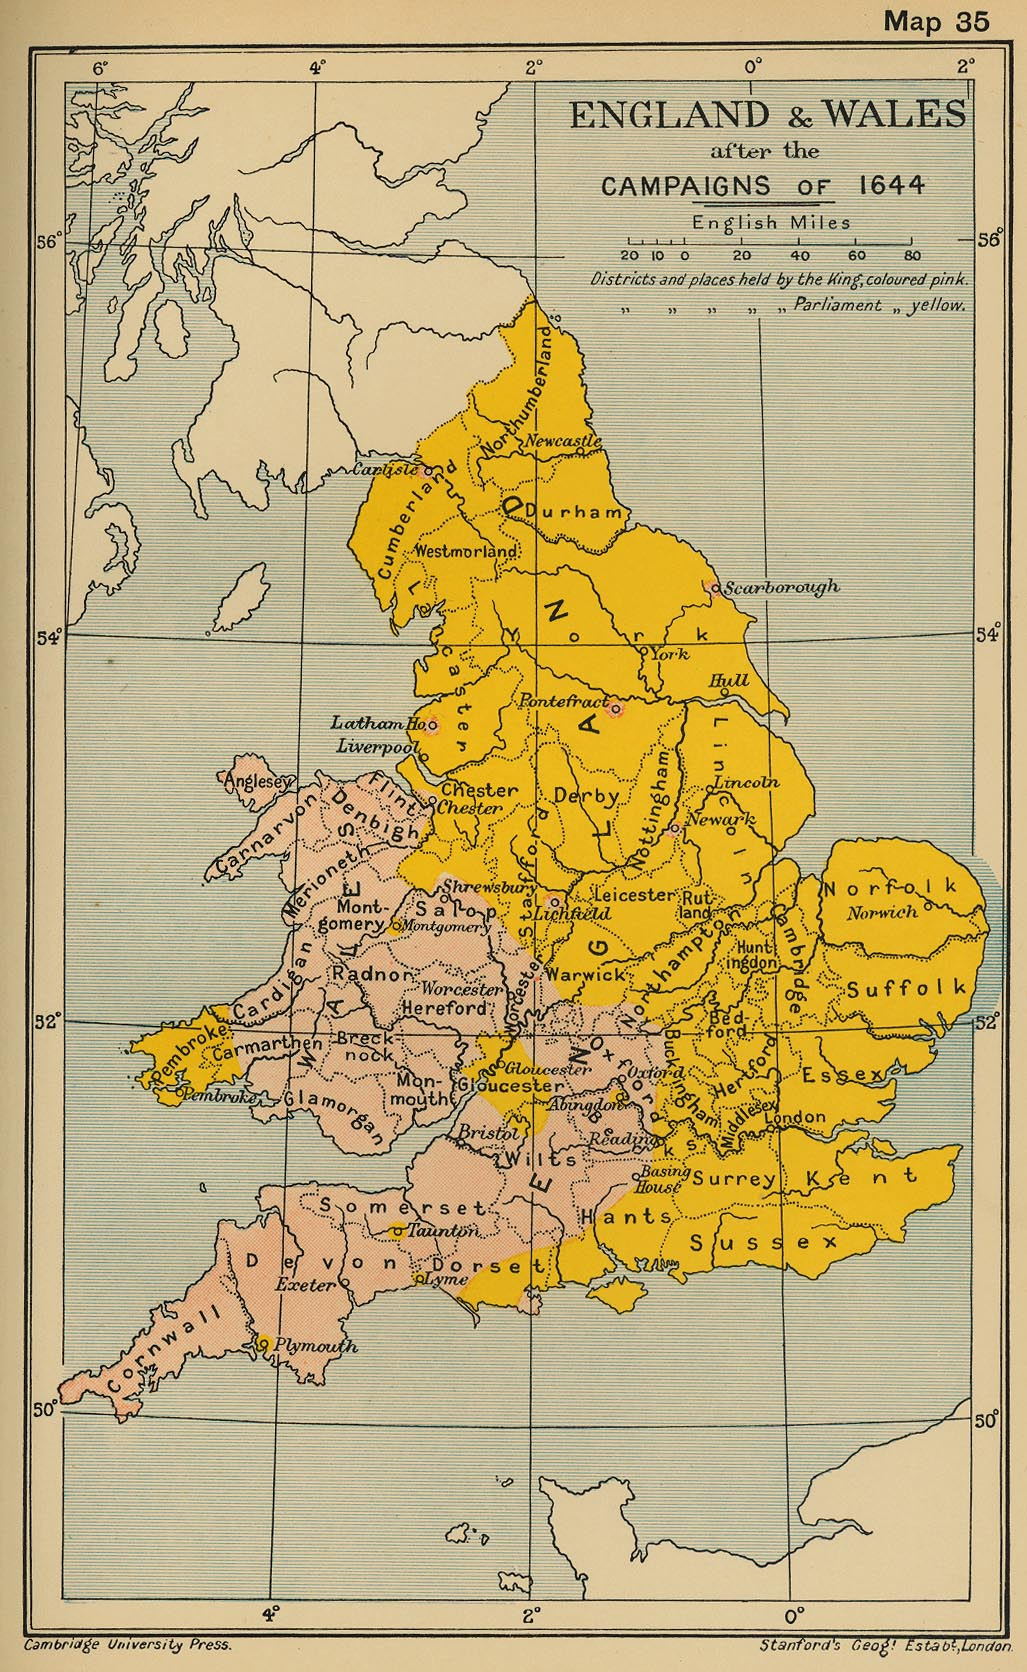 Map of England and Wales after the campaigns of 1644